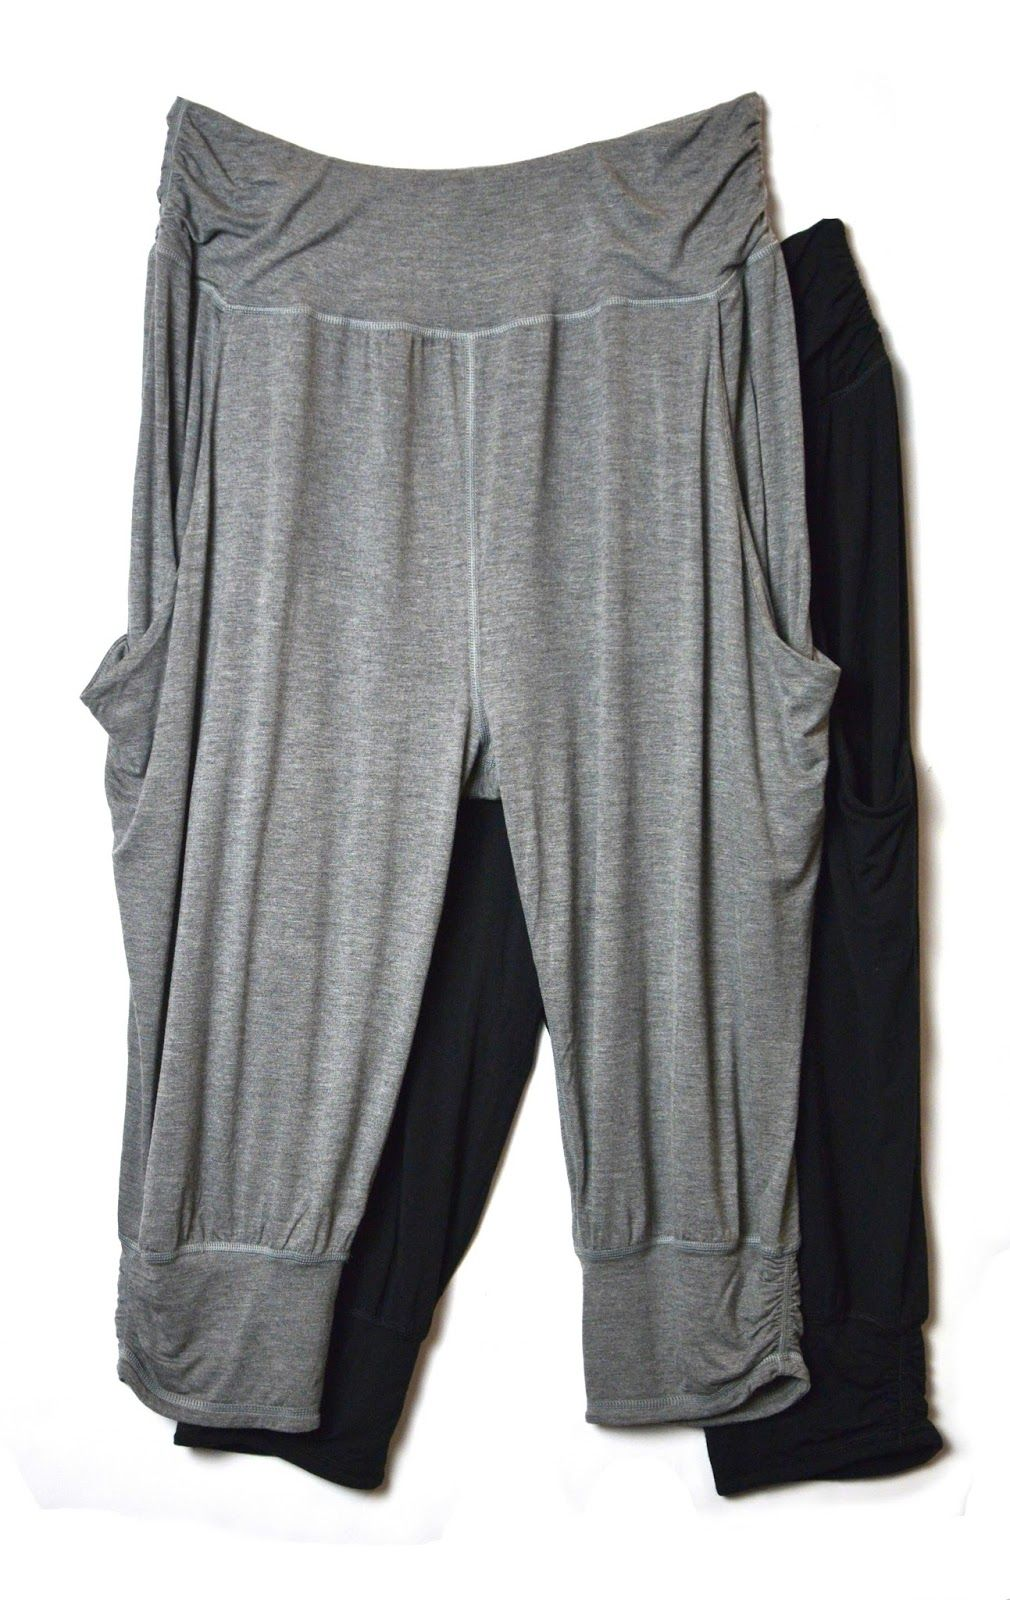 196bb82b1f6fb The Funky Monkey: Kohl's: GAIAM Yoga Clothing | Yoga | Yoga pants ...